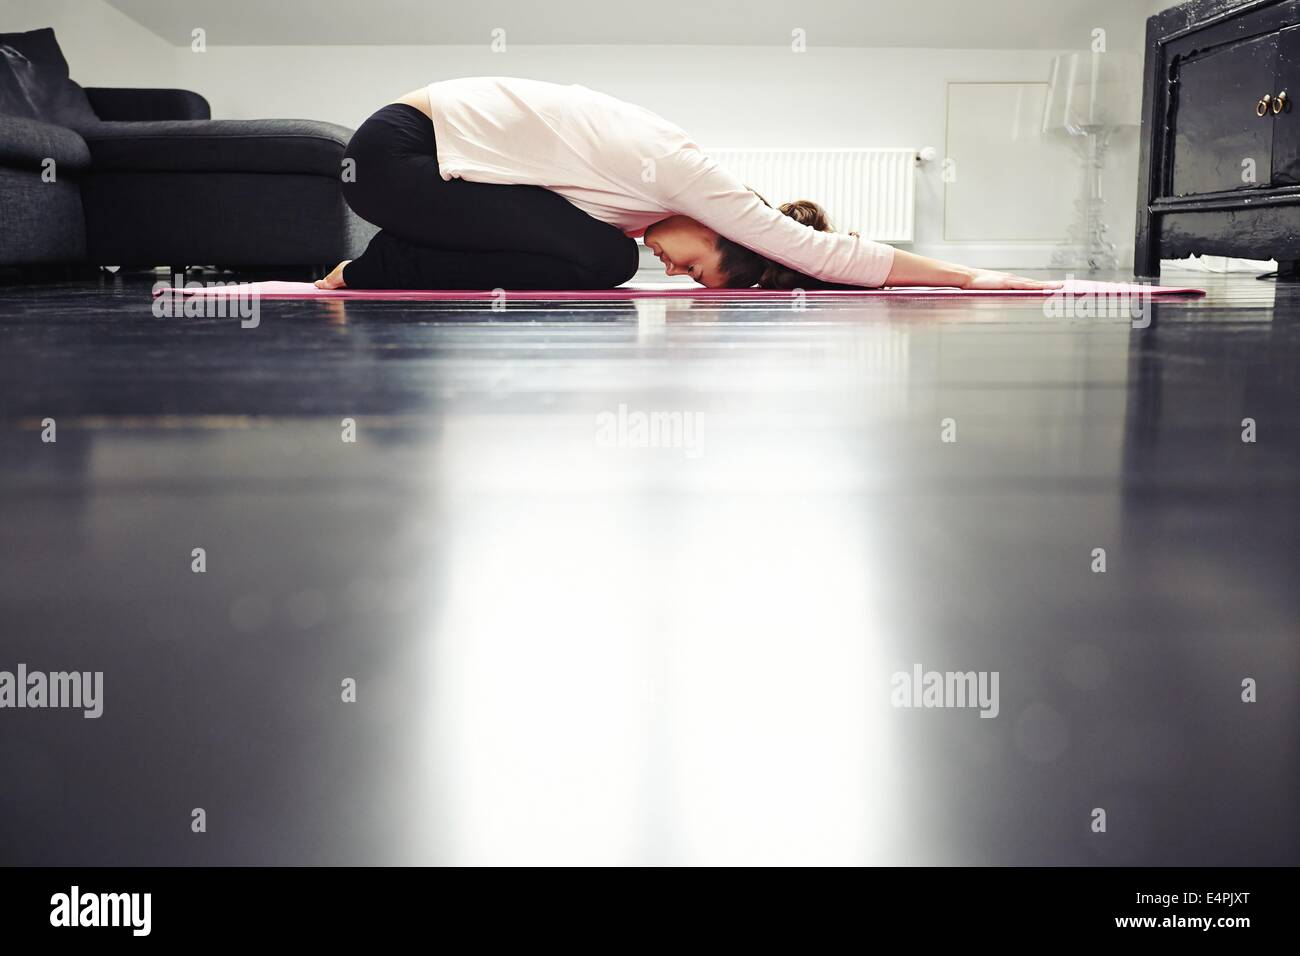 yoga stockfotos yoga bilder alamy. Black Bedroom Furniture Sets. Home Design Ideas